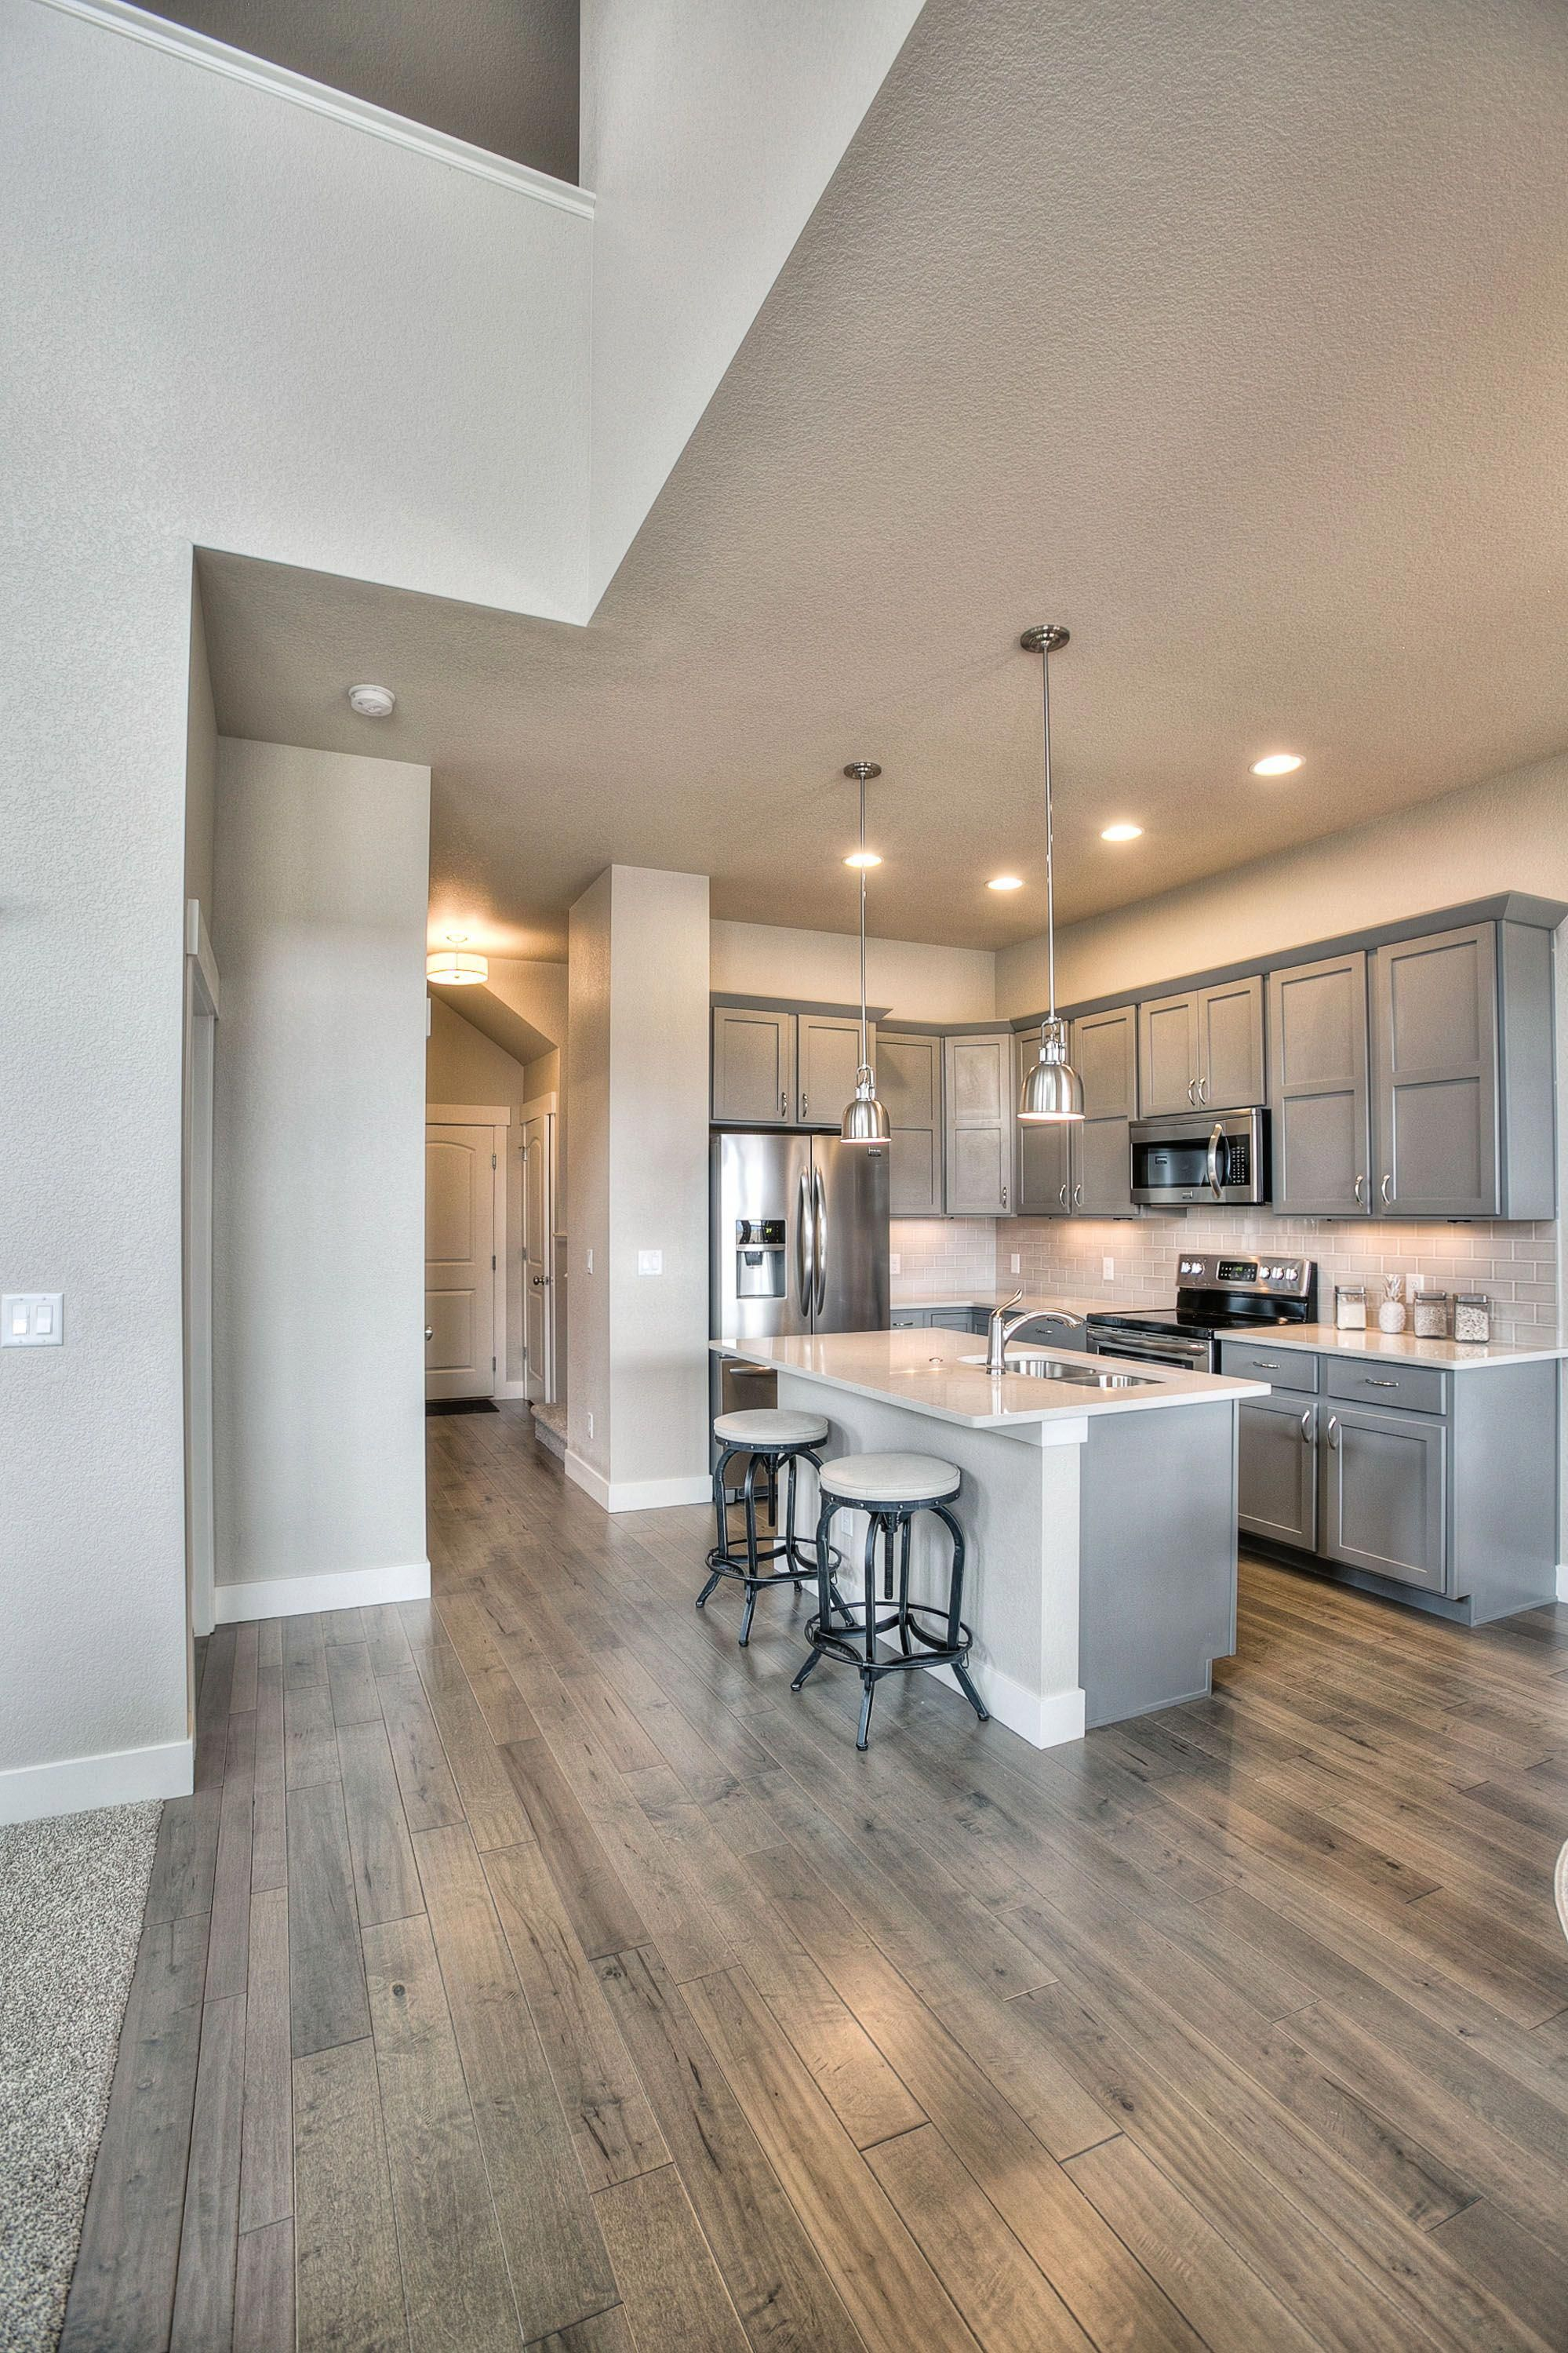 Kitchen Laundry Bathrooms Gray Shaker Maple Cabinets Woodflooringstain Grey Kitchen Floor Grey Wood Floors Kitchen Wood Floor Kitchen